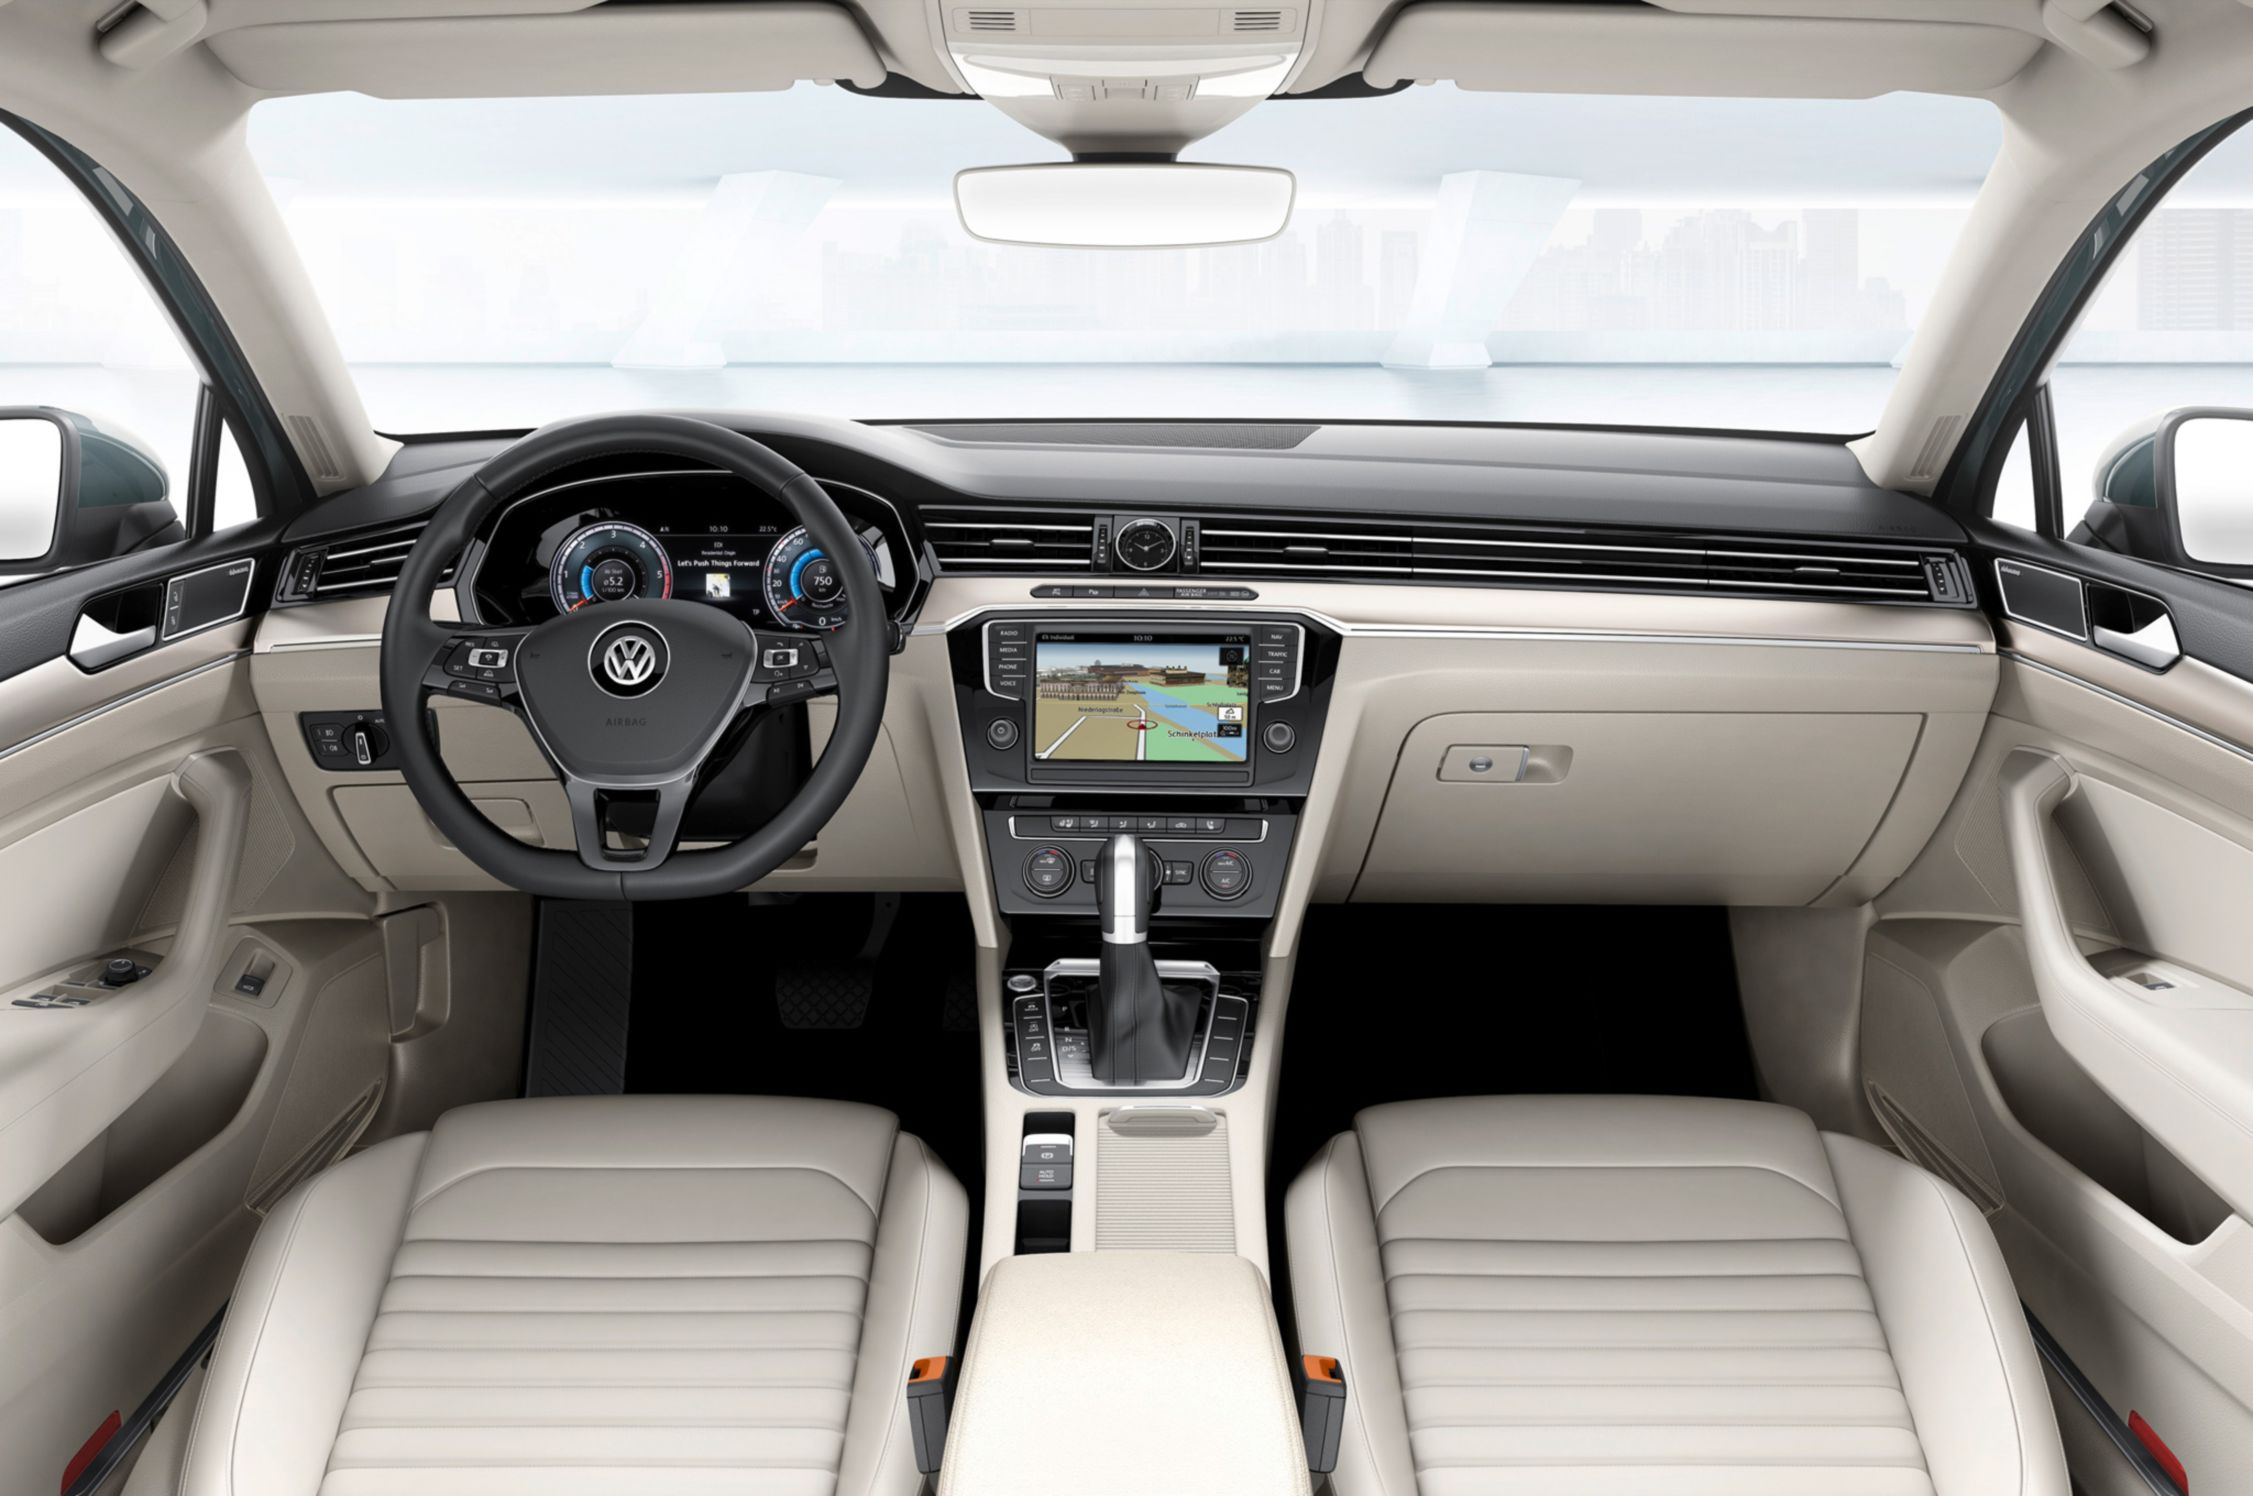 Download free HD Interior Volkswagen PassAT 2015 Photos Wallpaper, image